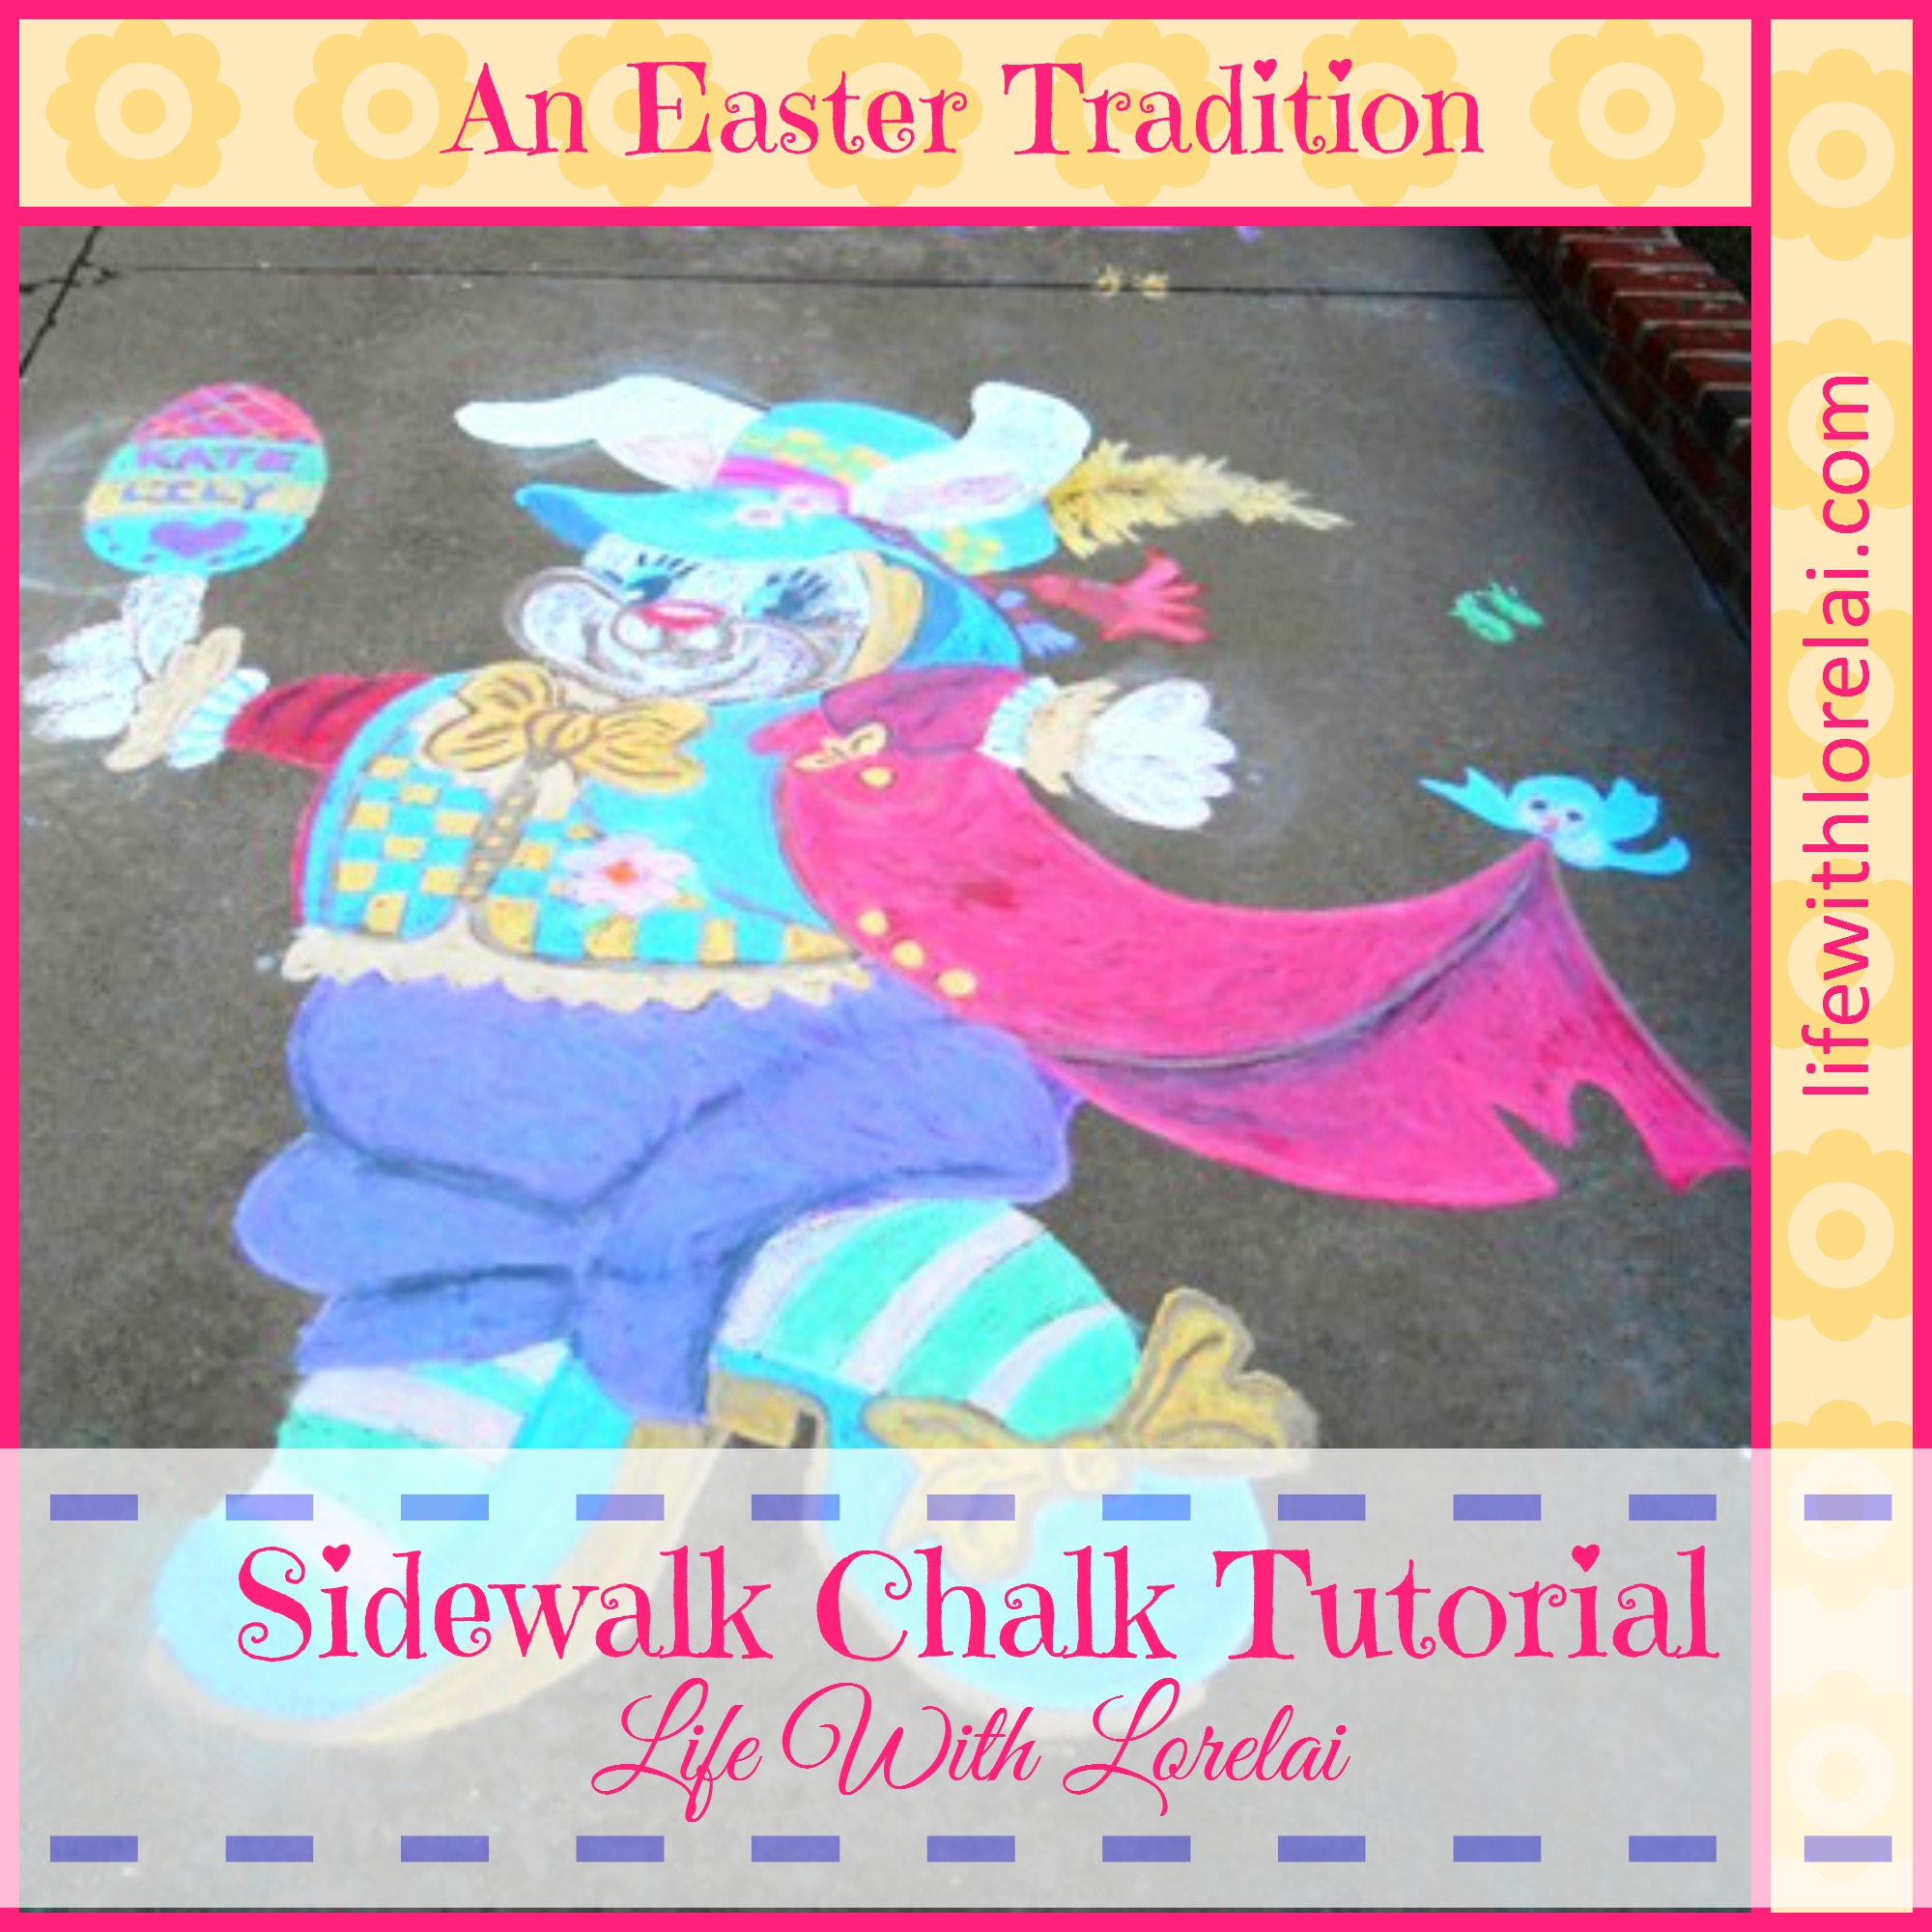 Create your own art and Easter Tradition with Sidewalk Chalk and this easy tutorial.